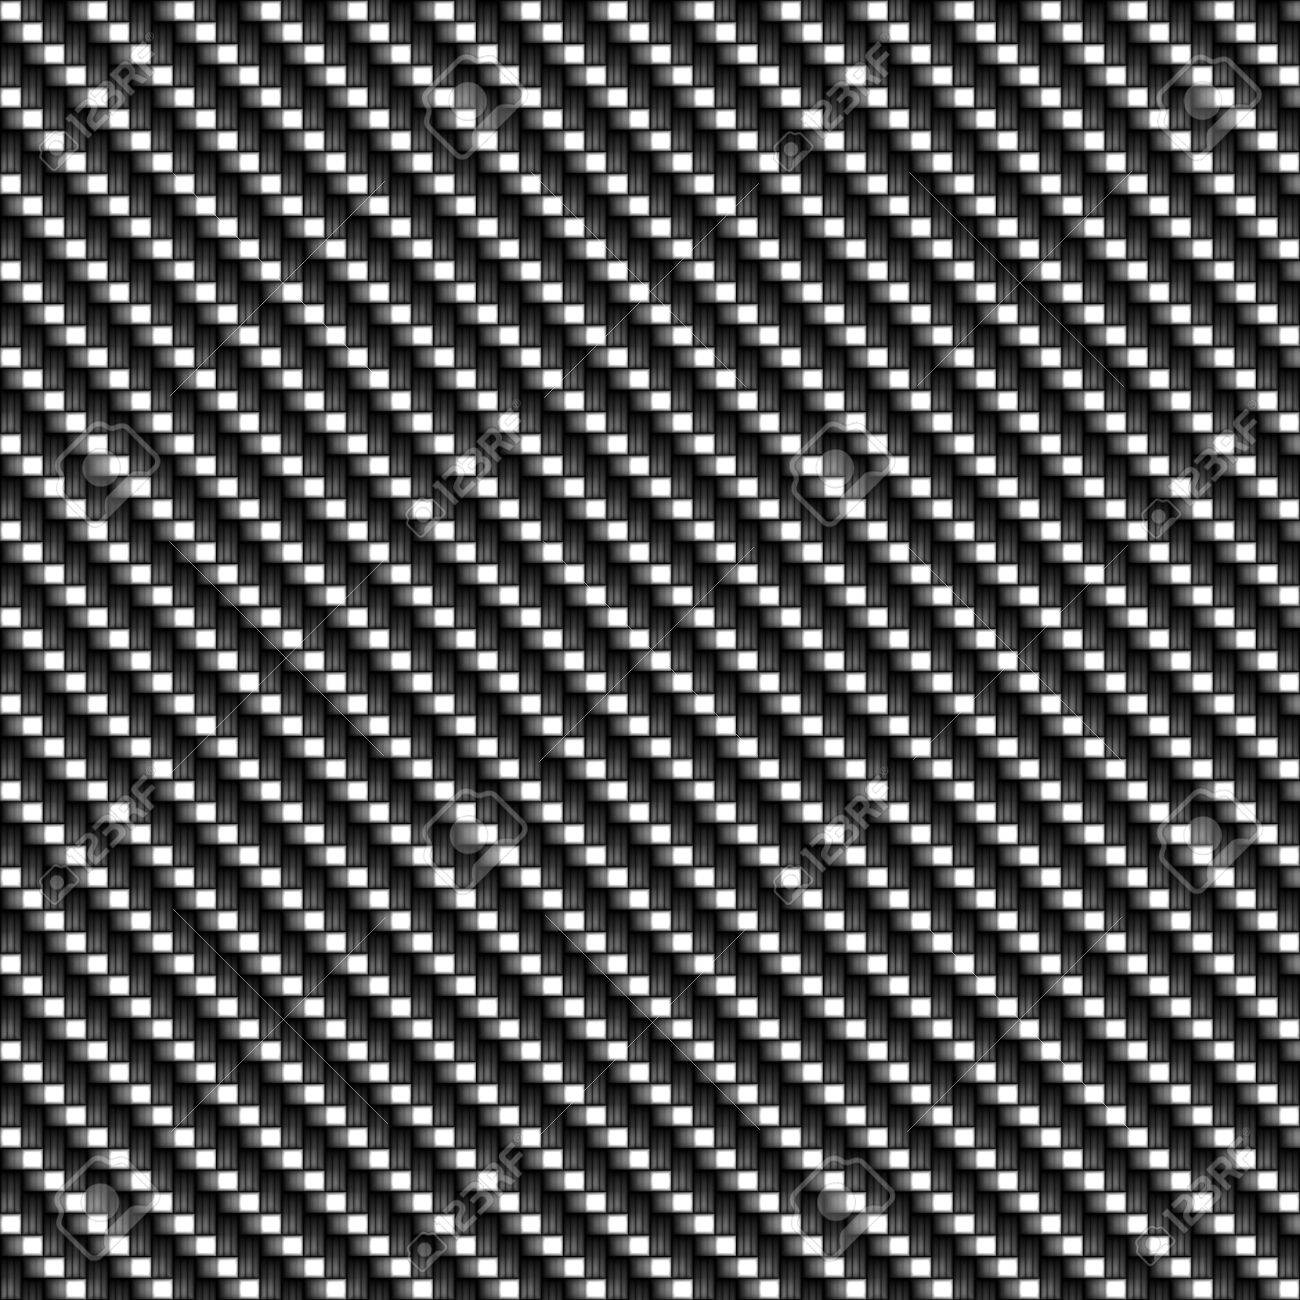 A realistic carbon fiber texture that tiles seamlessly in a pattern.  A very modern seamless texture for both print and web designs. Stock Photo - 5710223